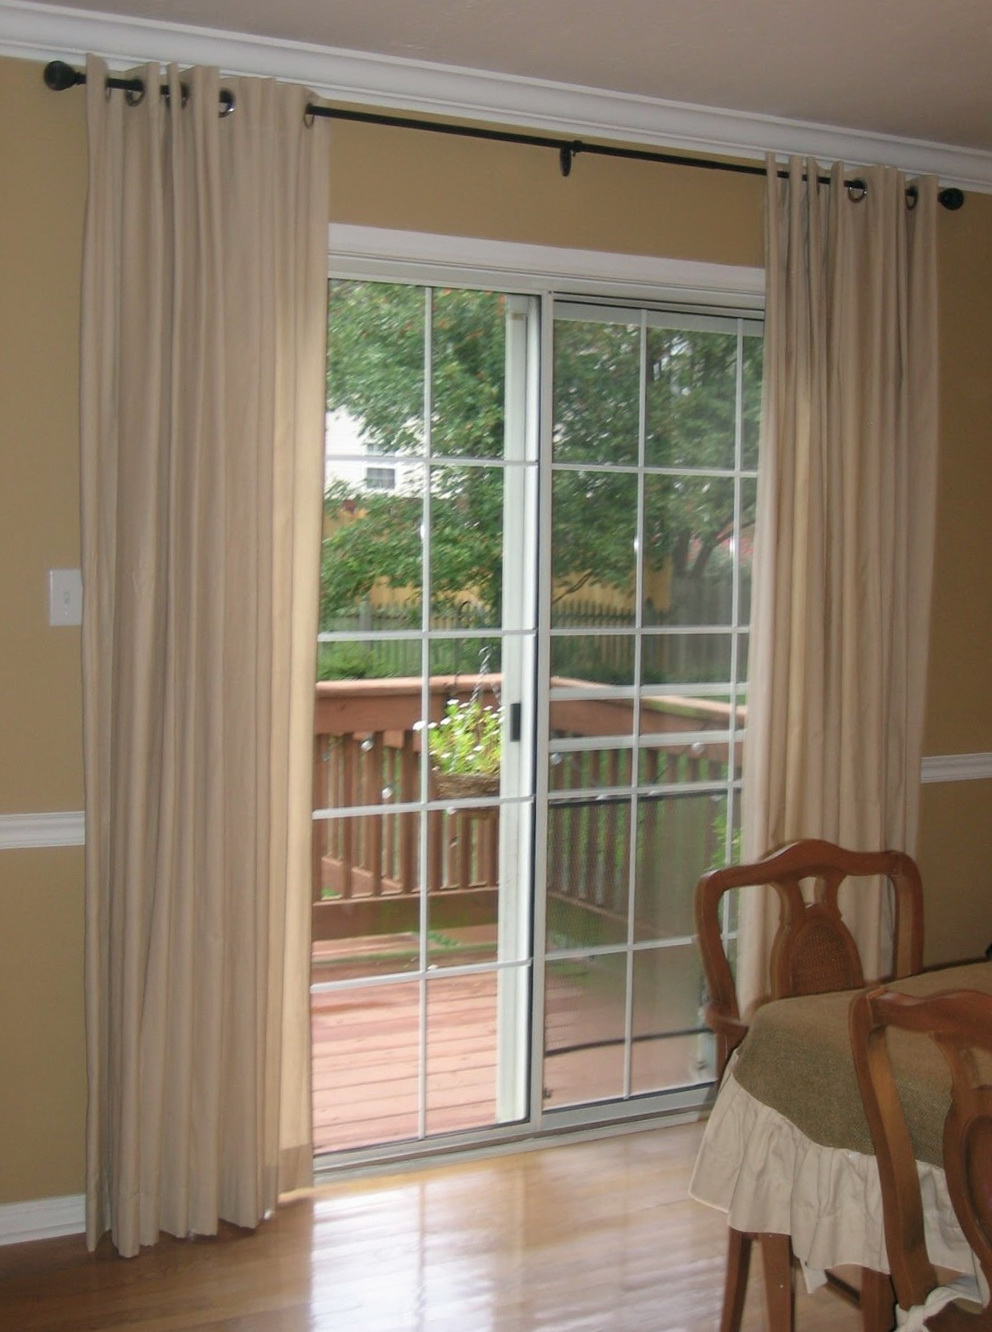 Blinds Or Curtains For Sliding Glass Doors Home Design Ideas